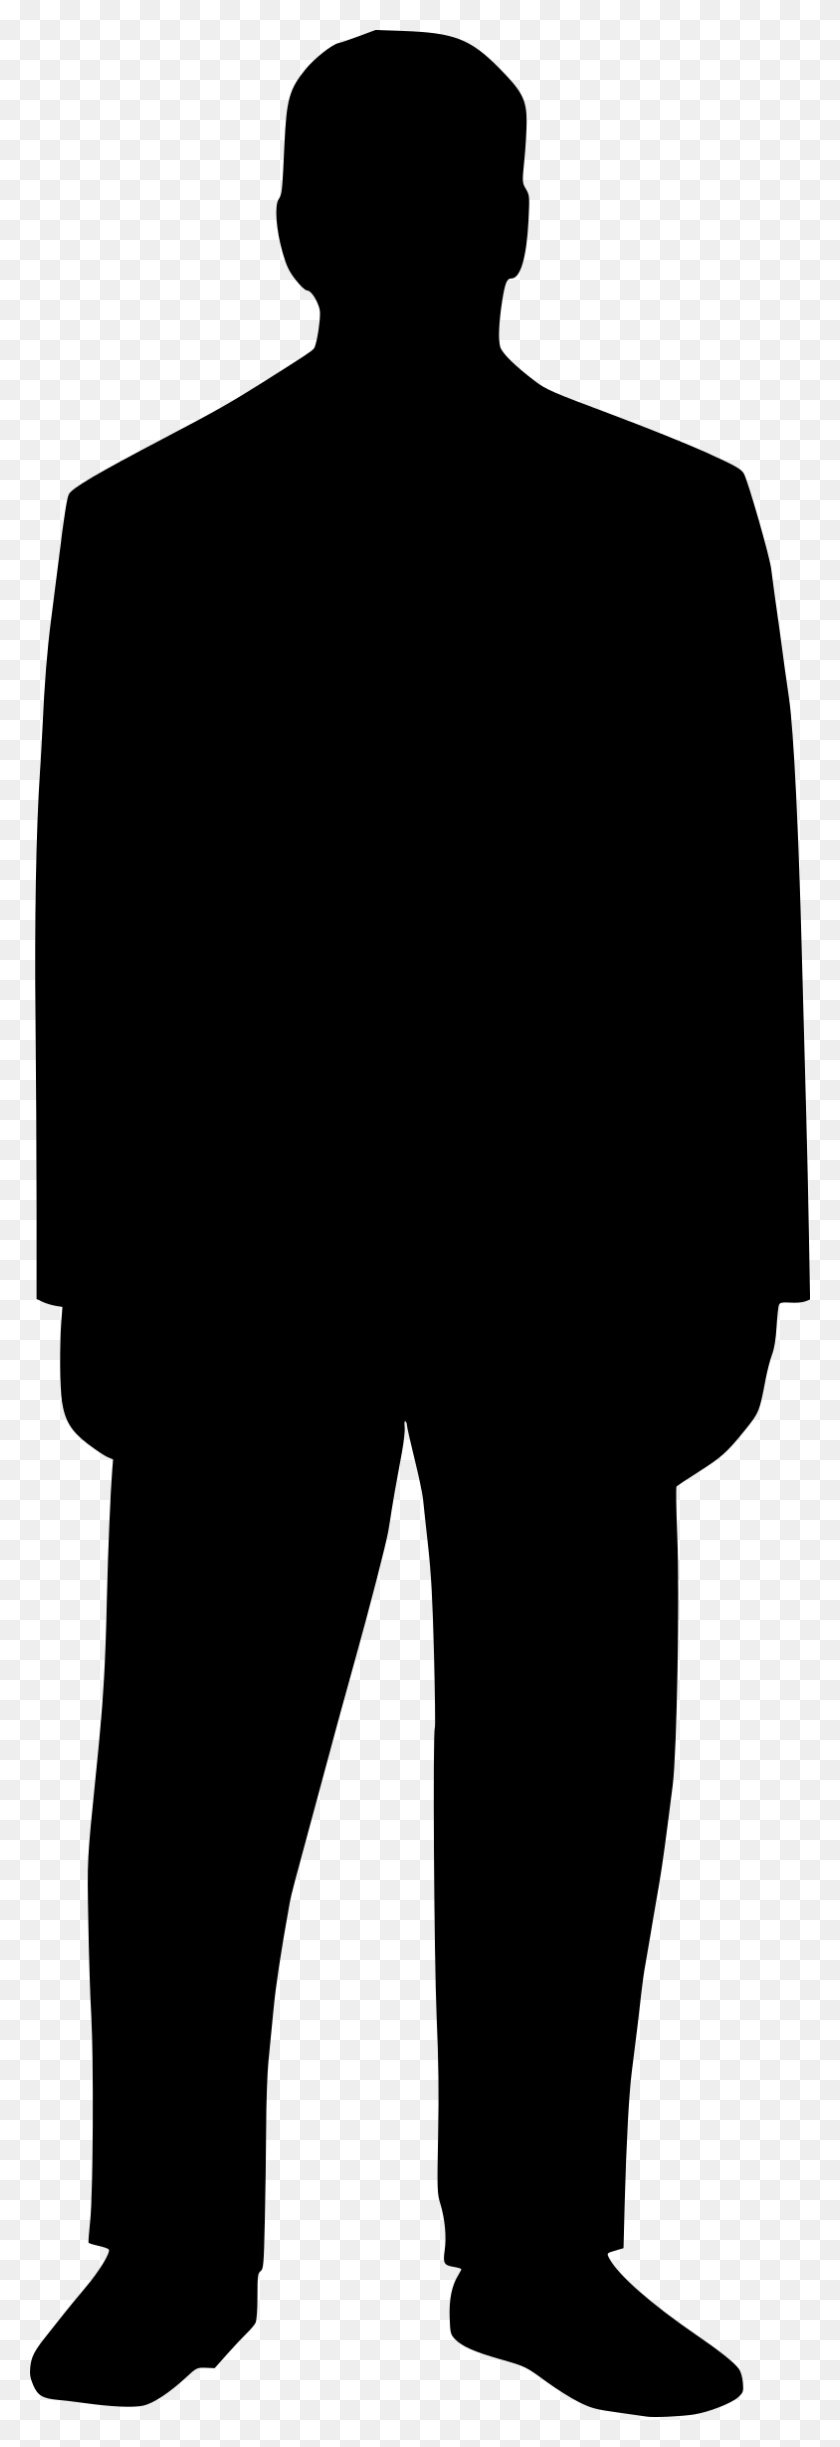 Clipart - People Standing PNG